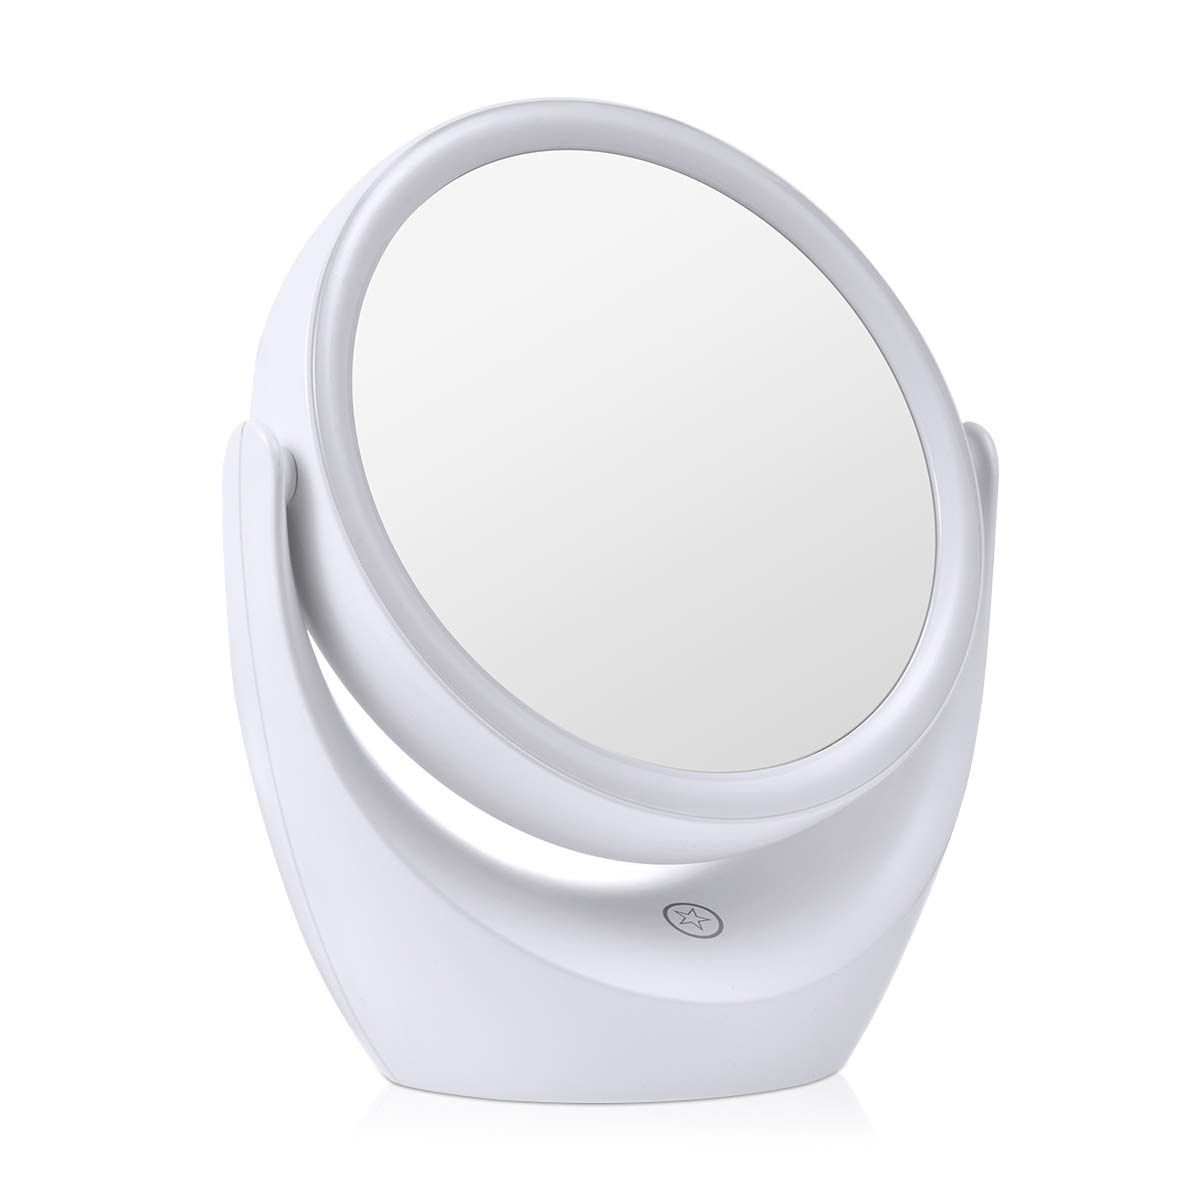 Tememdy LED Lighted Makeup Vanity Mirror Rechargeable, Double Sided Magnifying Makeup Mirror, 1x 5x Magnification 360 Degree Swivel with Dimmable Touch Screen